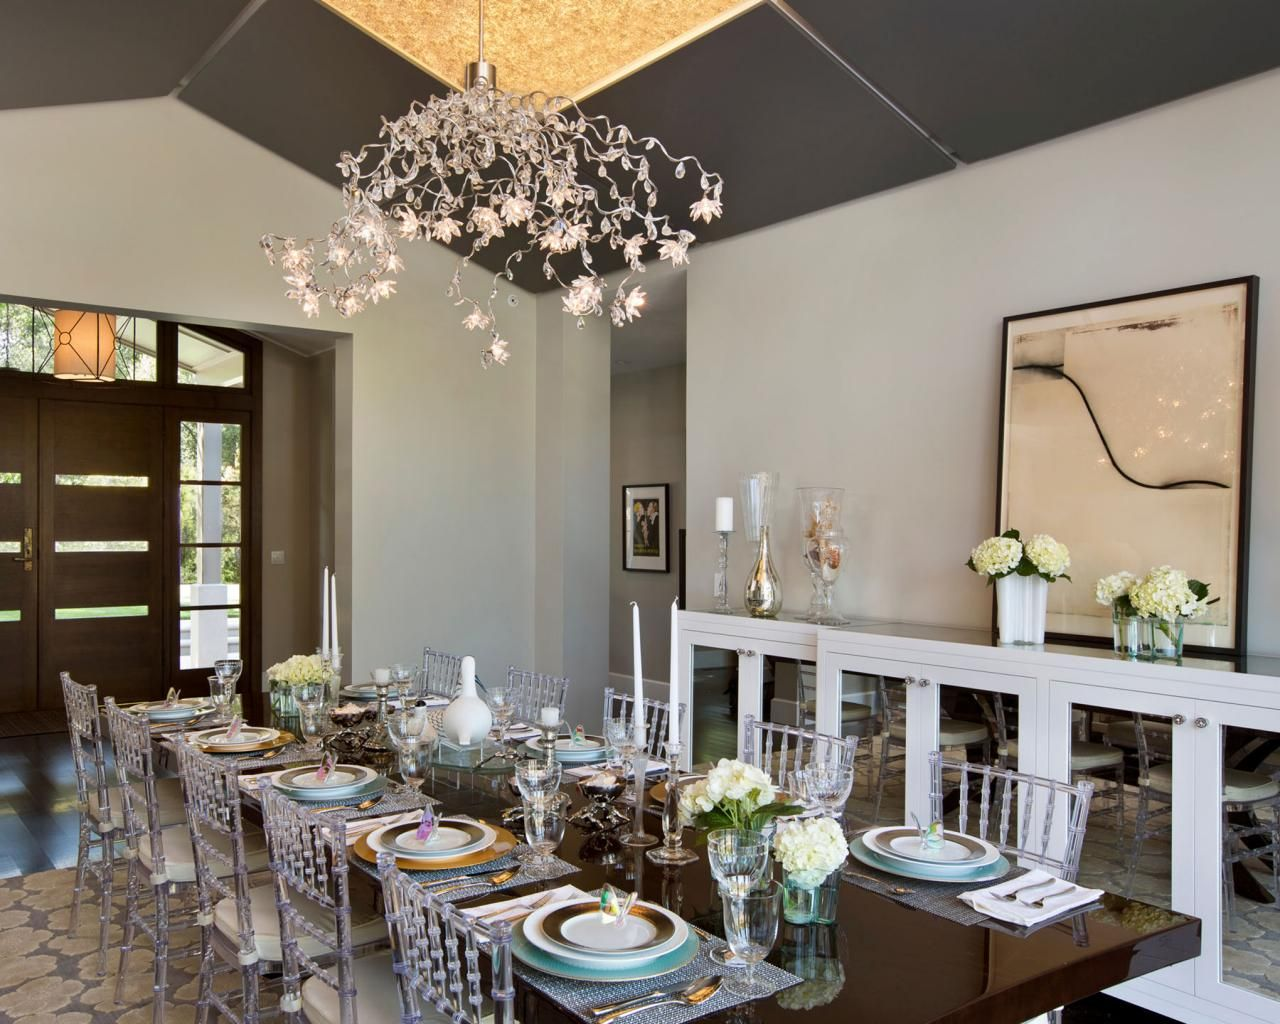 Contemporary Chandeliers For Dining Room Captivating Lighting Tips For Every Room  White Buffet Table White Buffet Inspiration Design